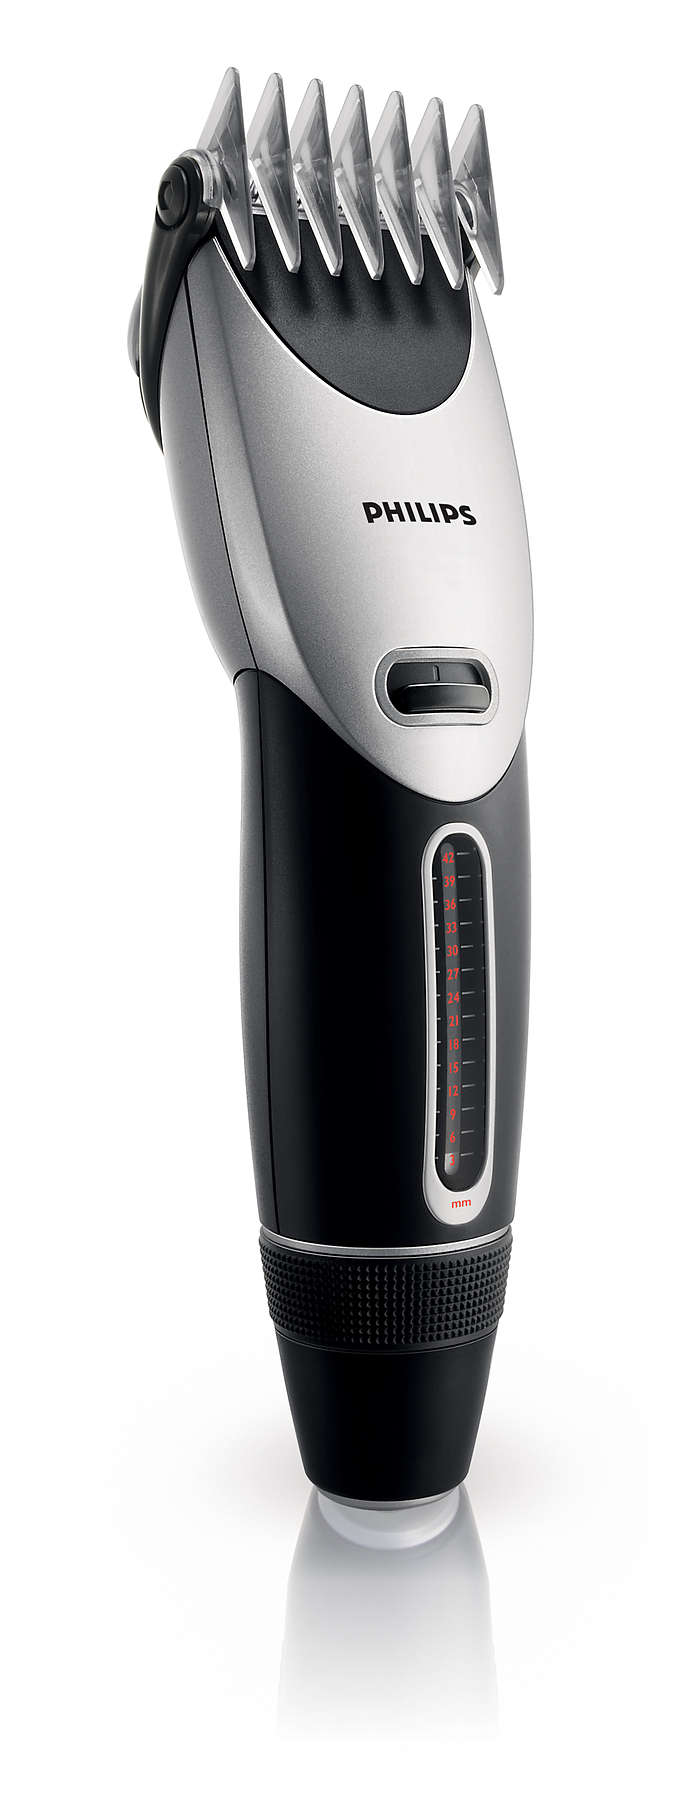 Super easy hairclipper